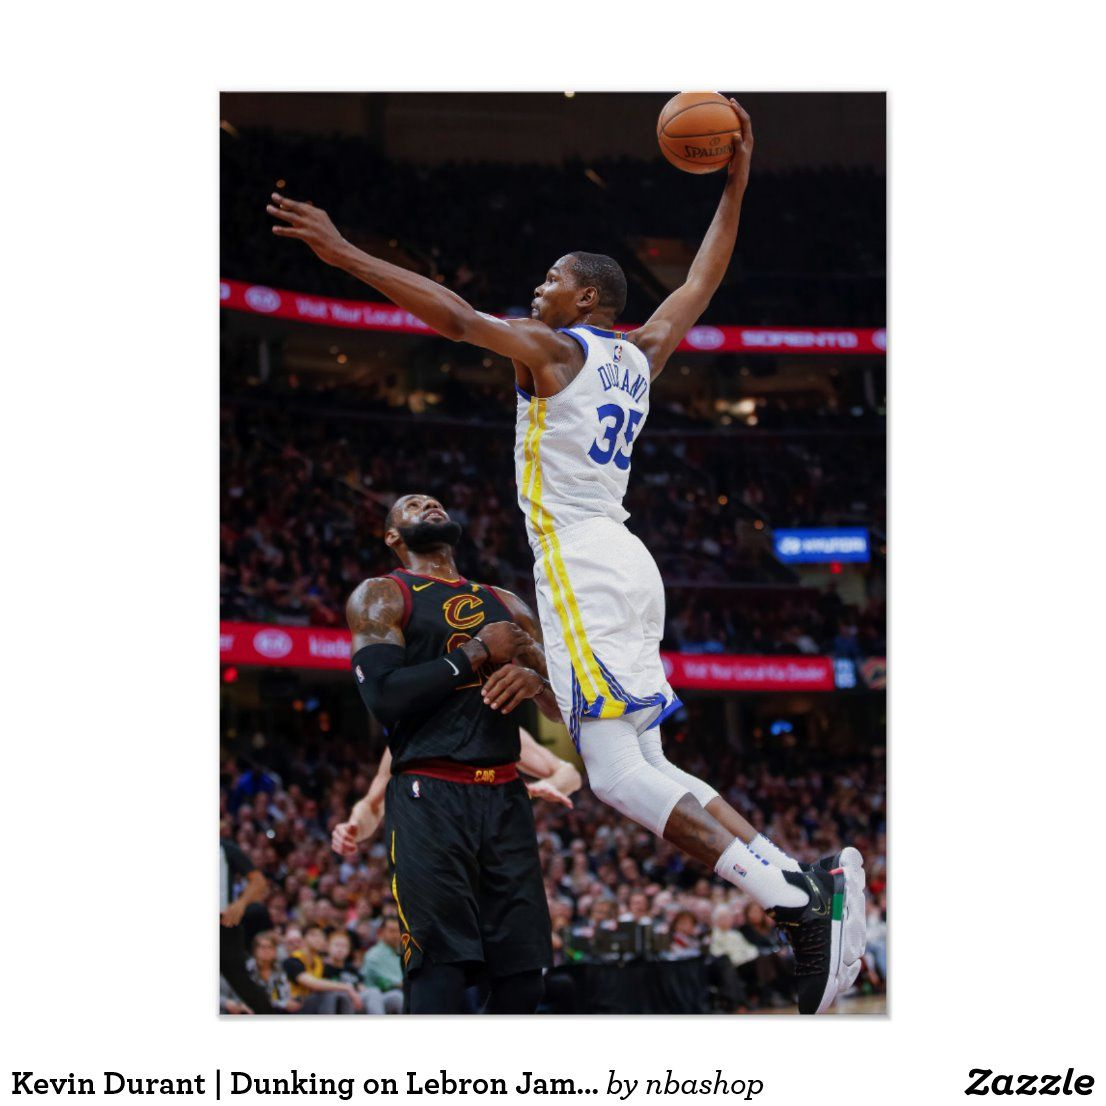 Kevin Durant Dunking On Lebron James Print Zazzle Com Lebron James Kevin Durant Fashion Teenage